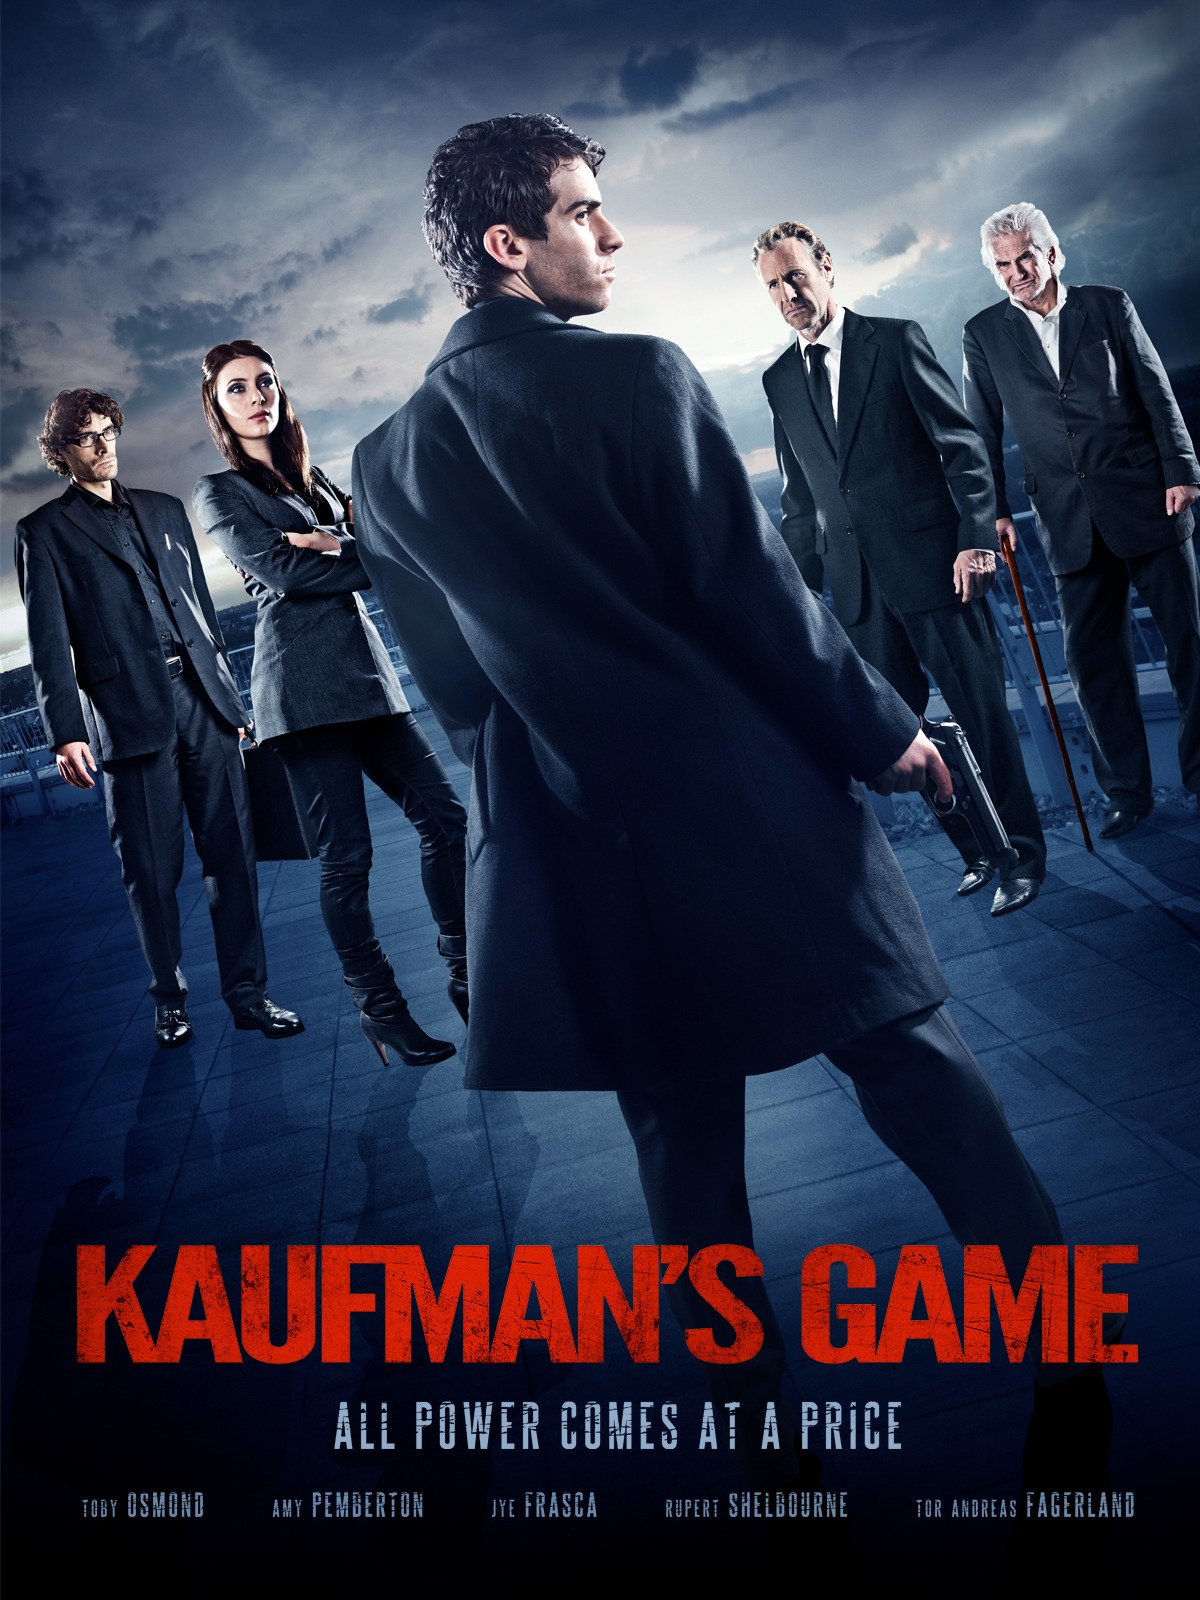 Kaufman's Game